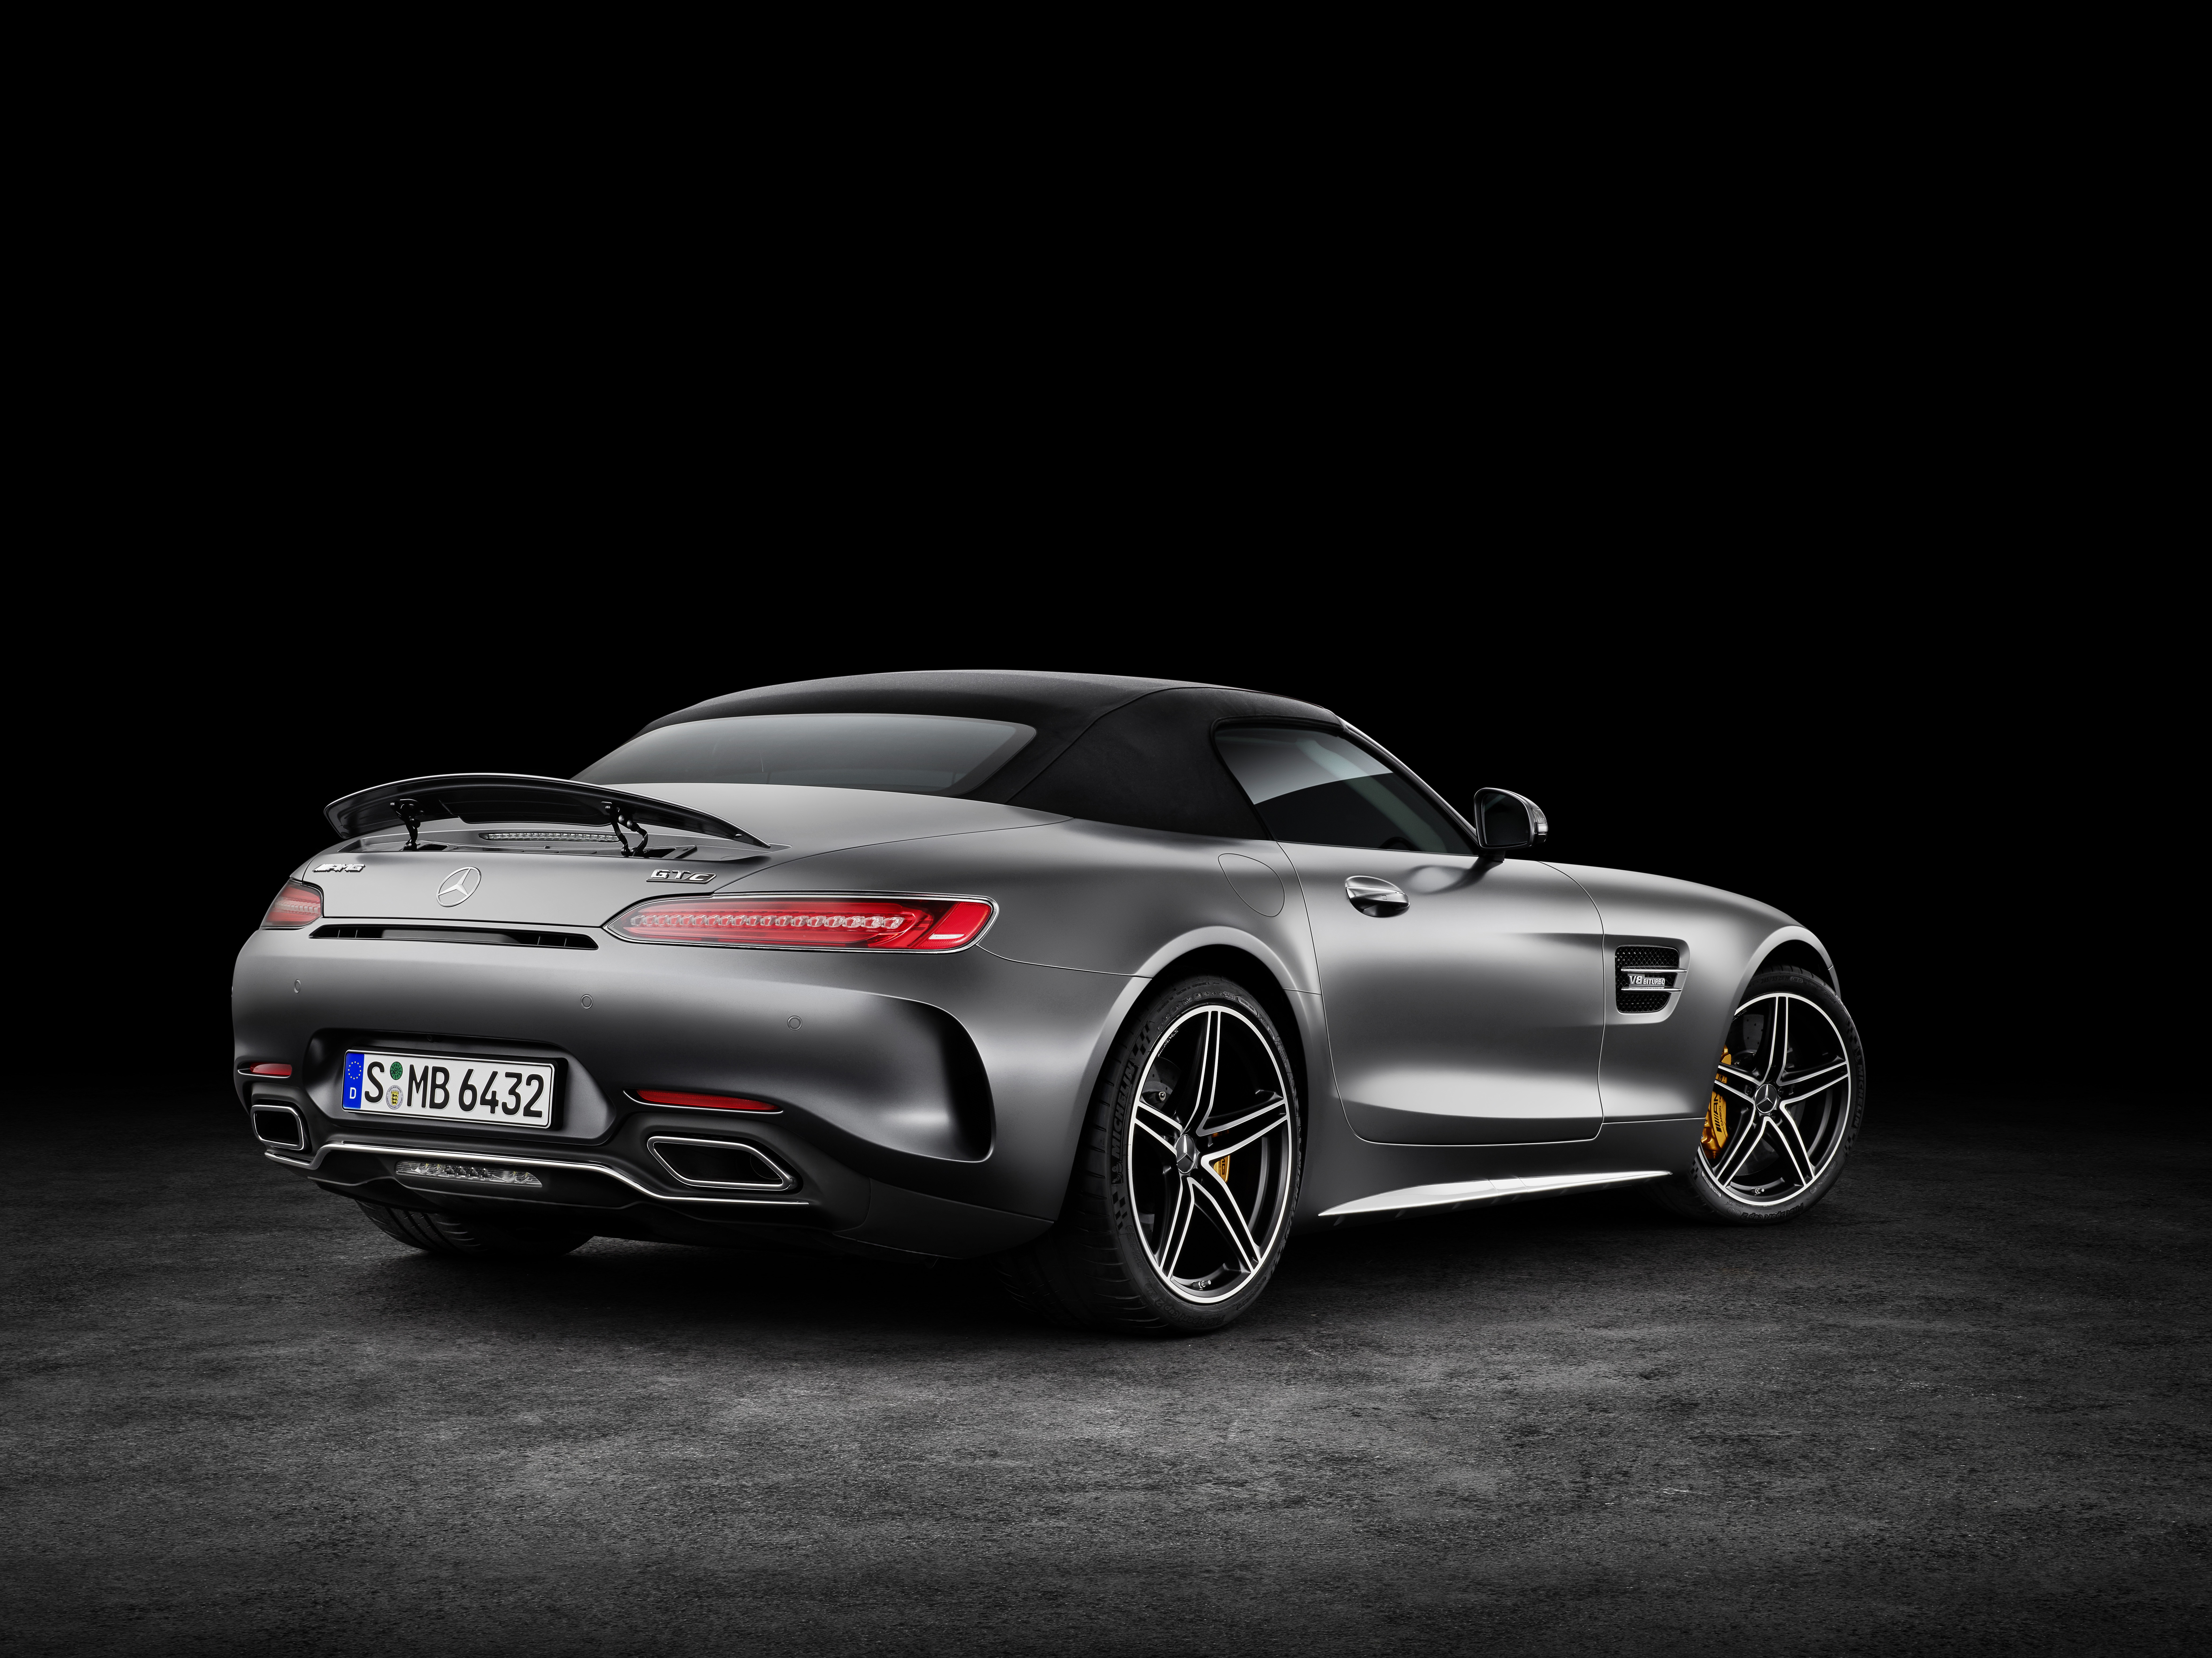 2018 Mercedes Amg Gt C Roadster Hd Cars 4k Wallpapers Images Backgrounds Photos And Pictures